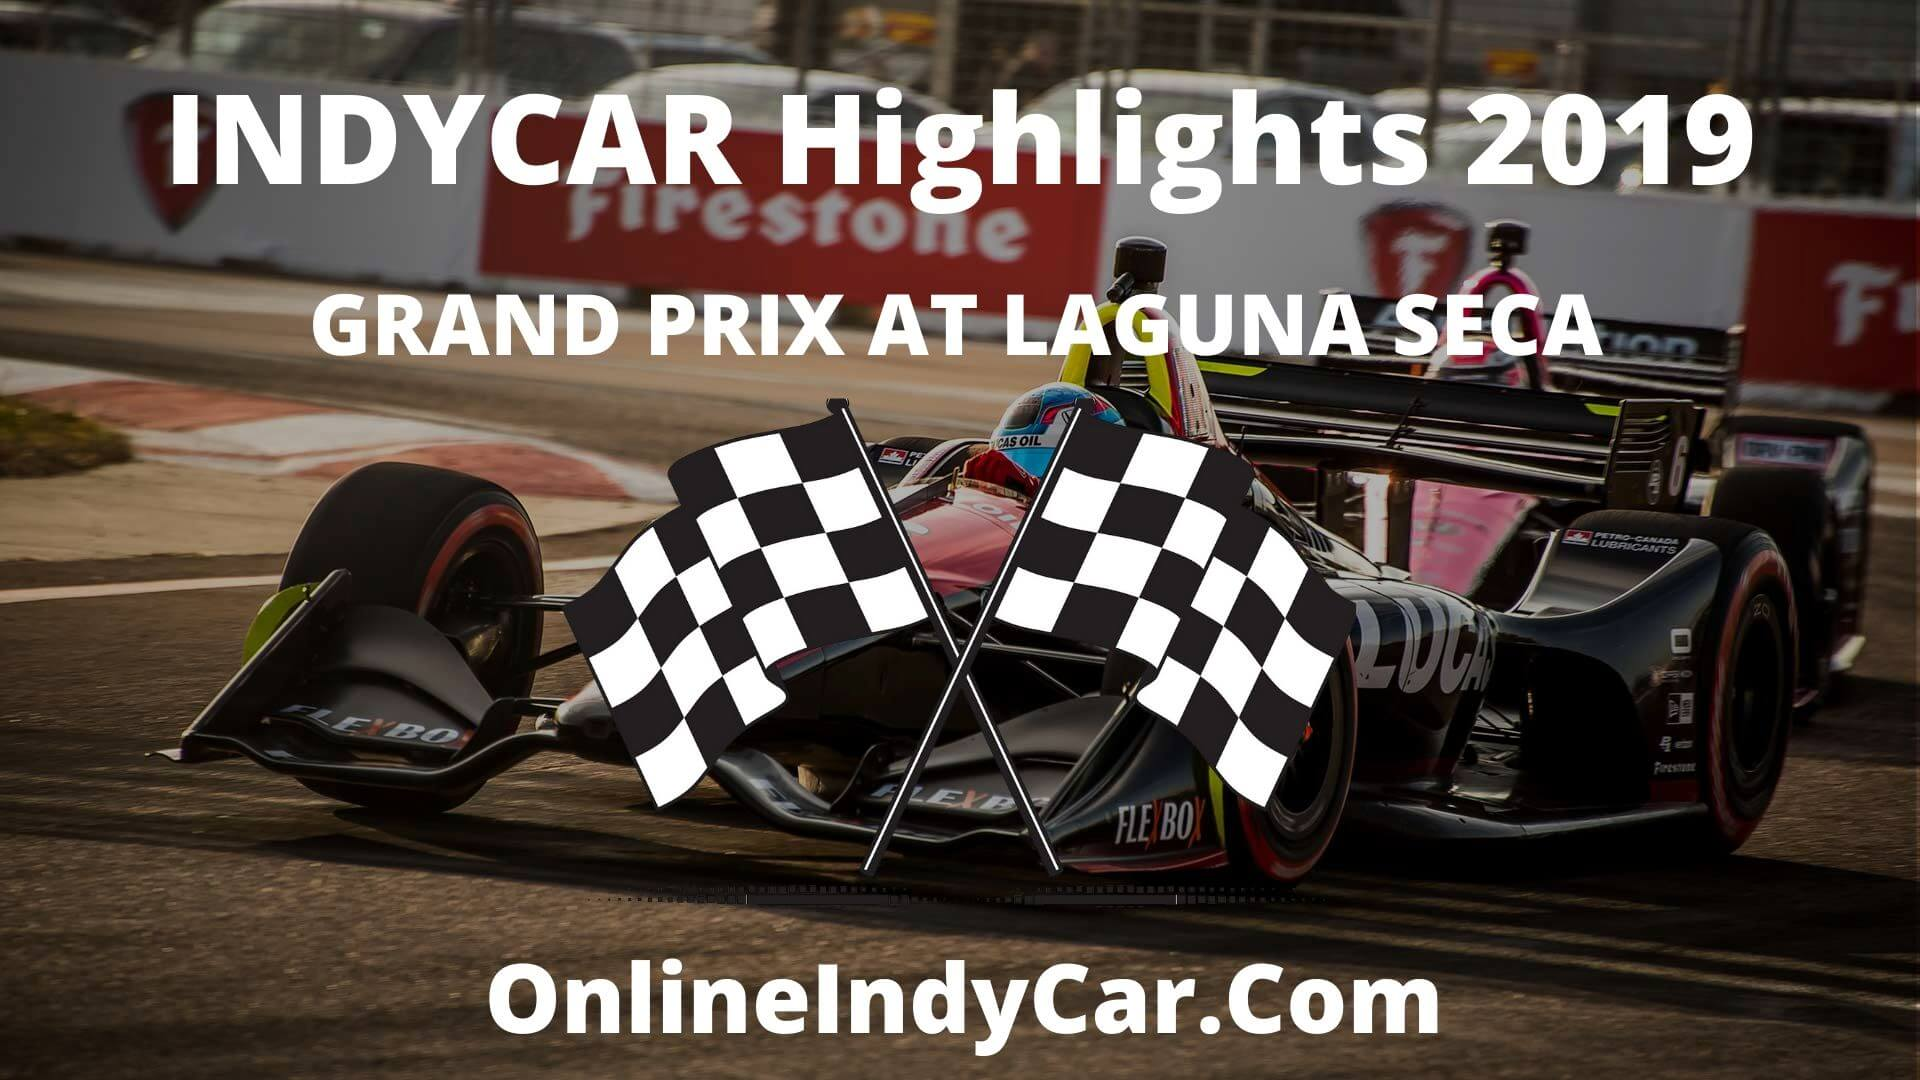 Grand Prix Laguna Seca Highlights 2019